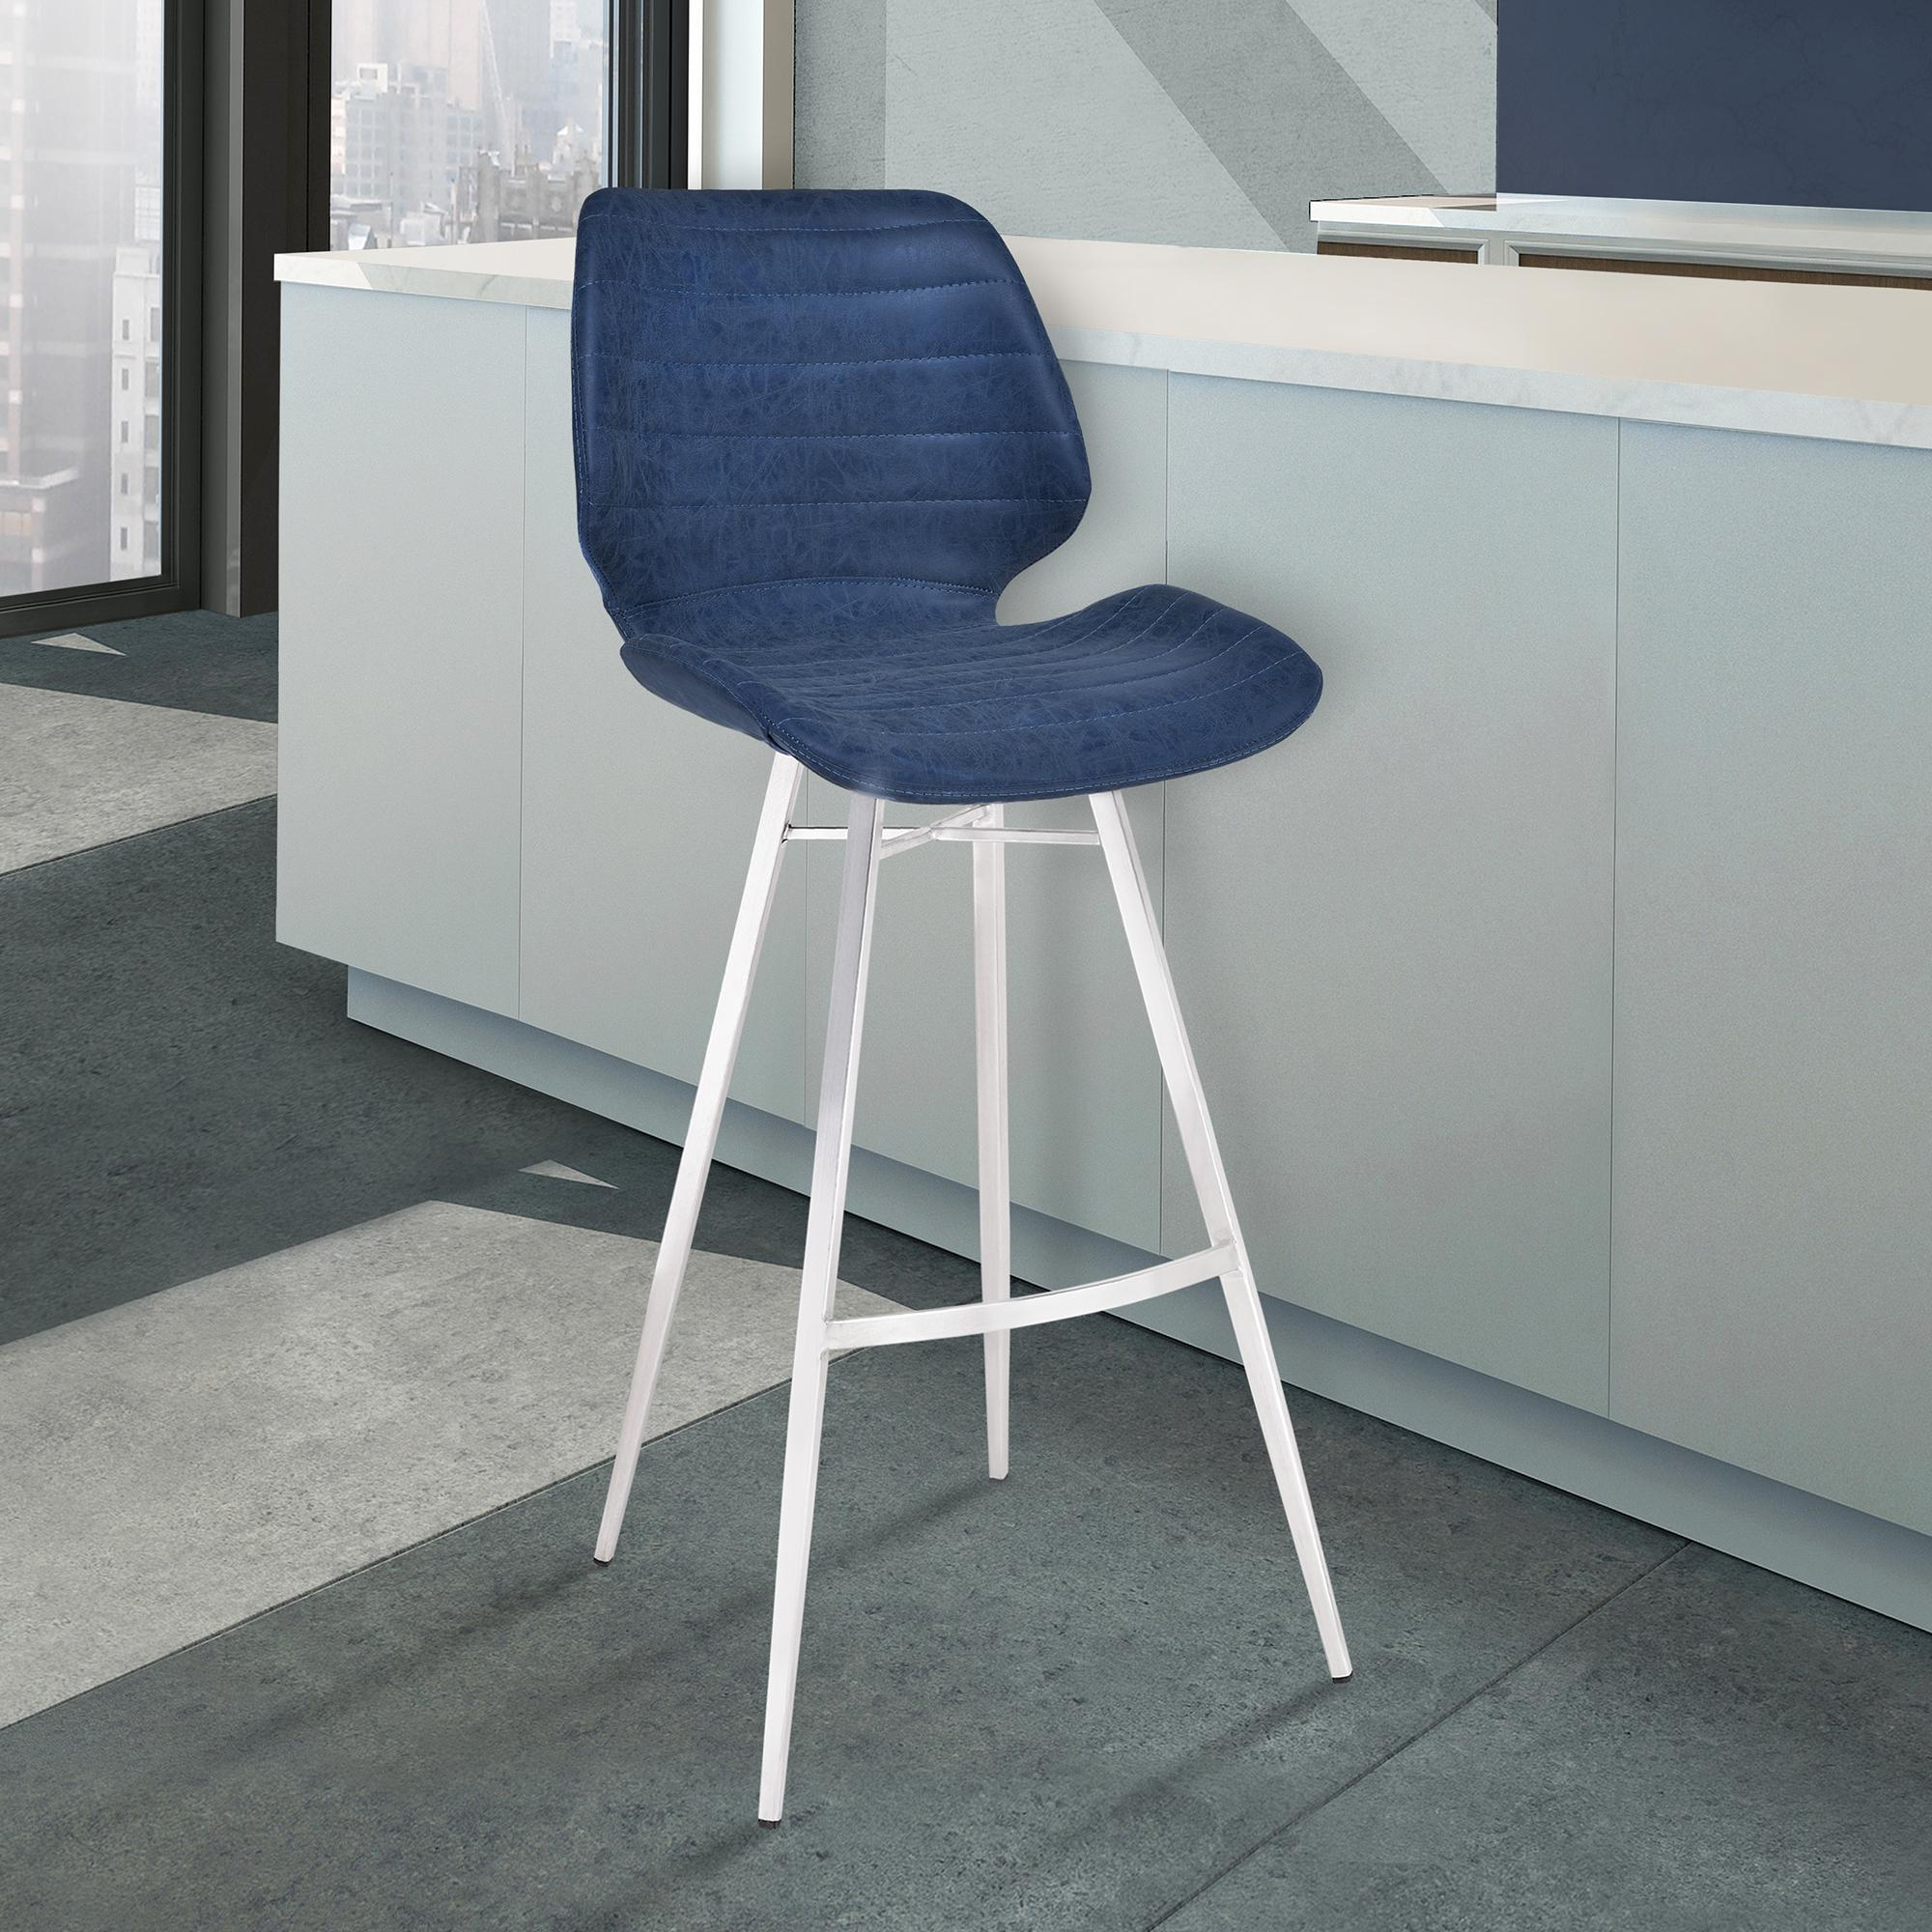 Armen Living Valor 30' Bar Height Barstool in Brushed Stainless Steel with Dark Vintage Blue Faux Leather